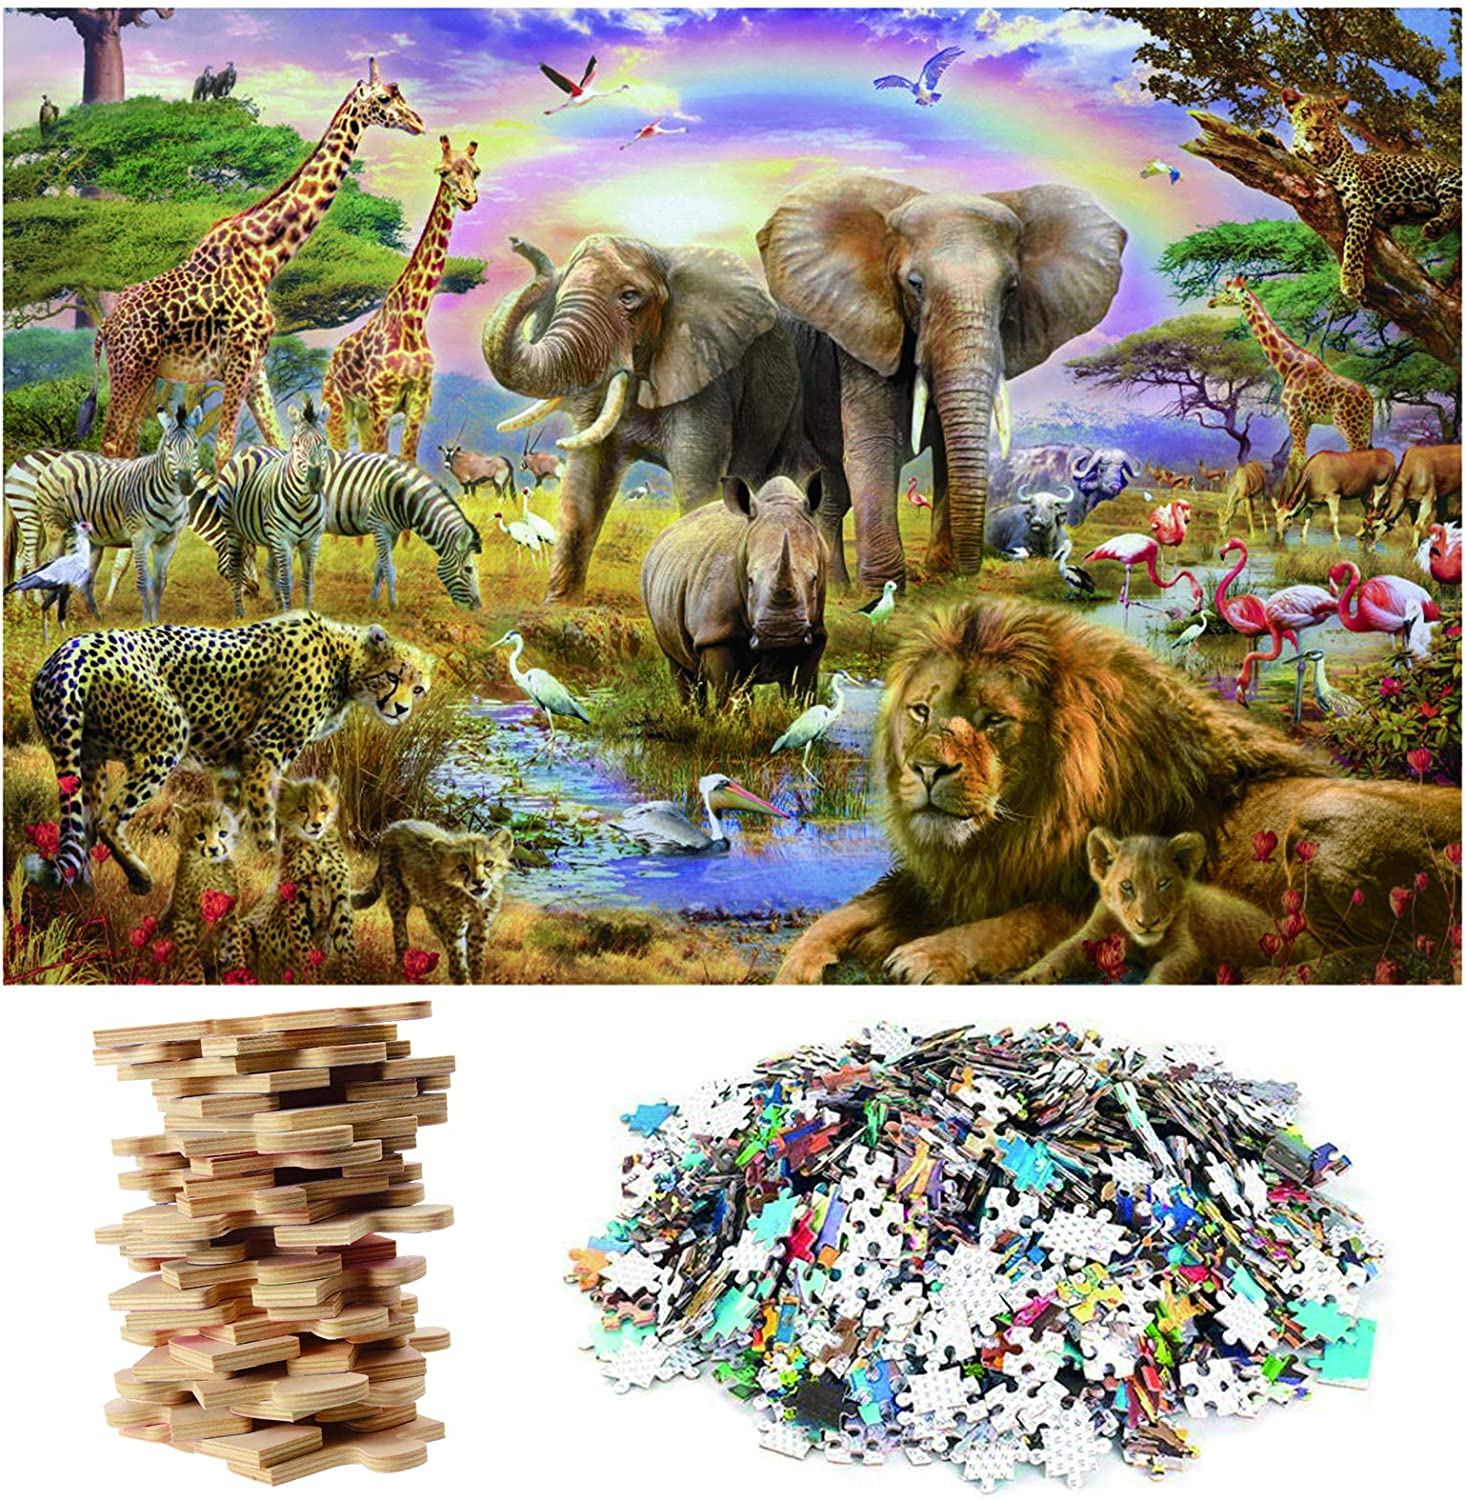 IYOYI Animal Wooden Jigsaw 1000 Piece Puzzles with Accessories Challenging Game for Adults Teens Families Entertainment Games Unique Birthday Xmas Gifts